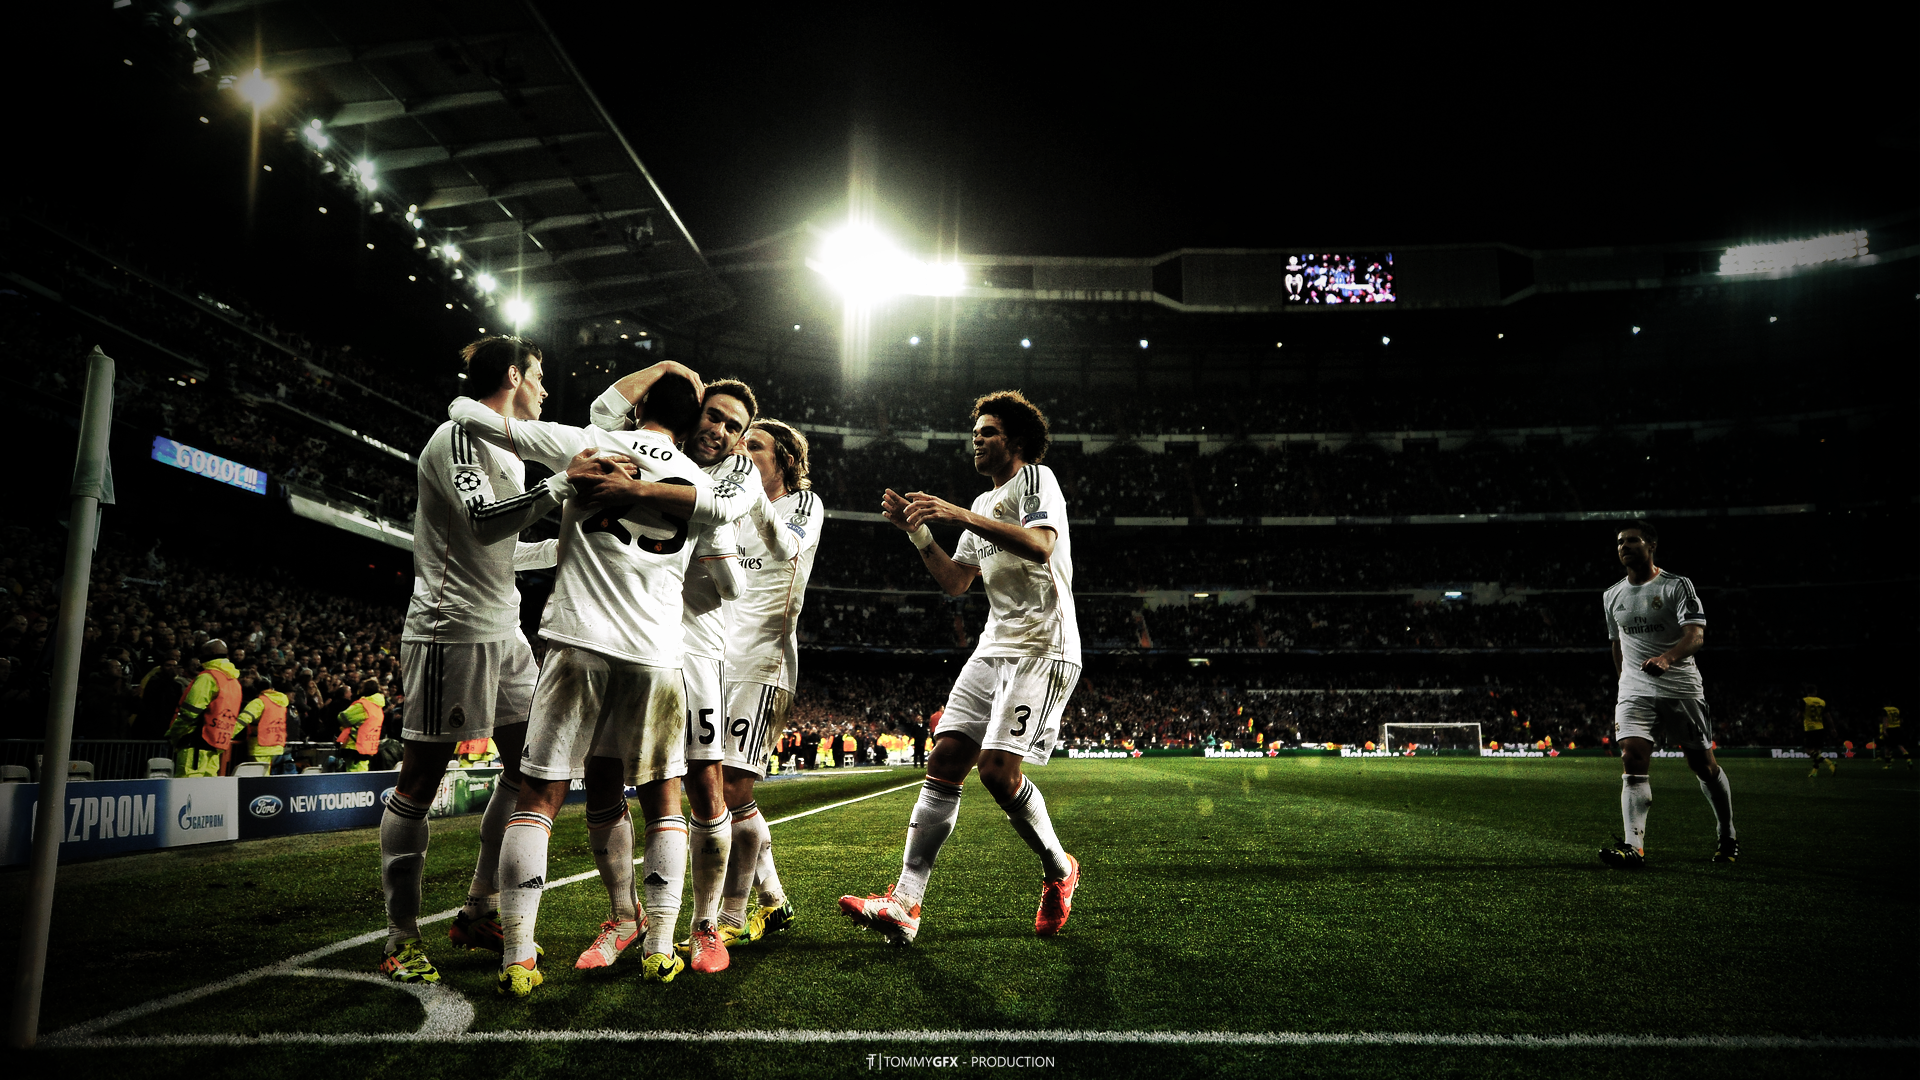 Real Madrid CF Were all white Wallpaper you like it 1920x1080